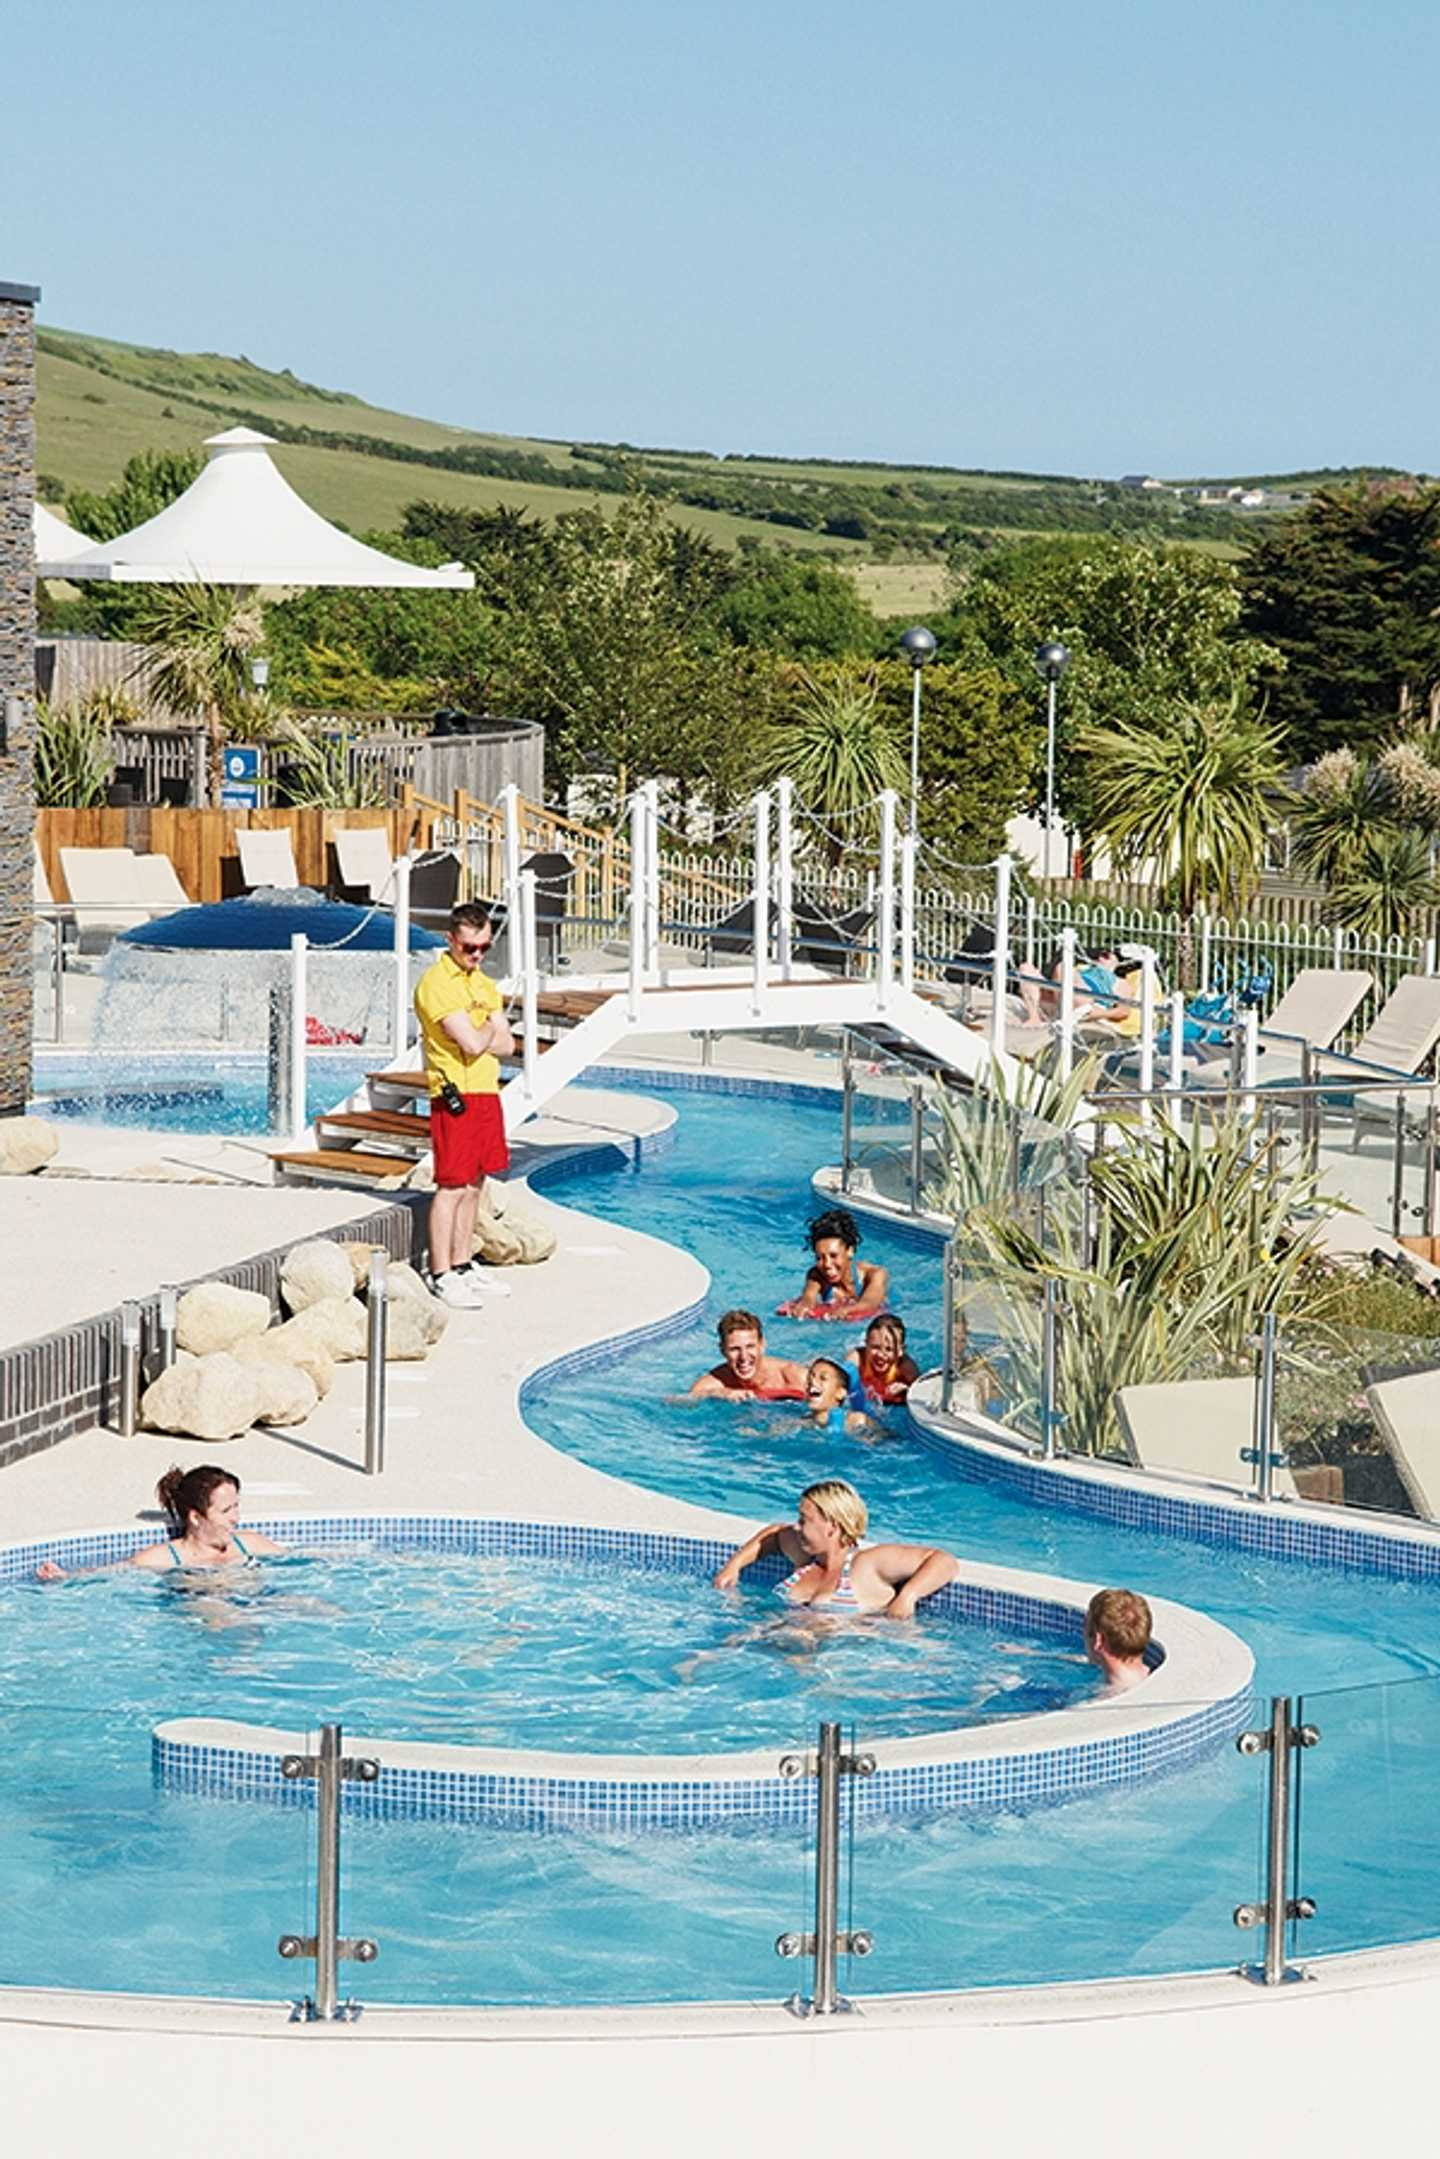 Guests floating down the lazy river at Weymouth Bay holiday park